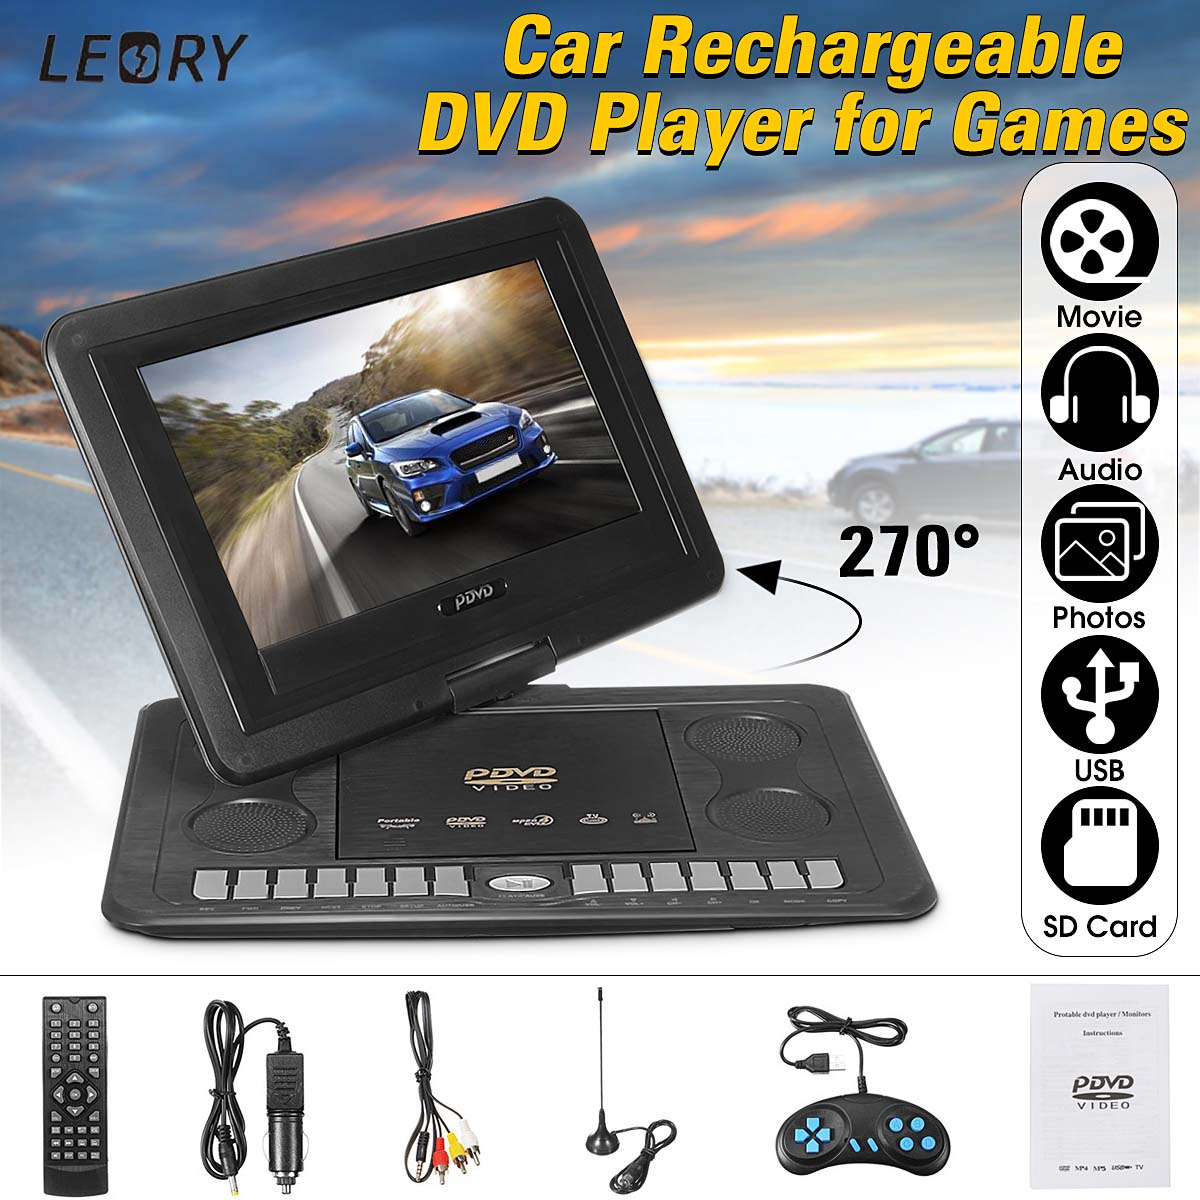 CLAITE 13.3 inch Portable In Car DVD Player Game Remote Control High Definition DVD Players 270 Degree Rotate Screen for AU Plug chimole a910 high quality high power 300w 9 inch high definition display dvd player portable square speakers